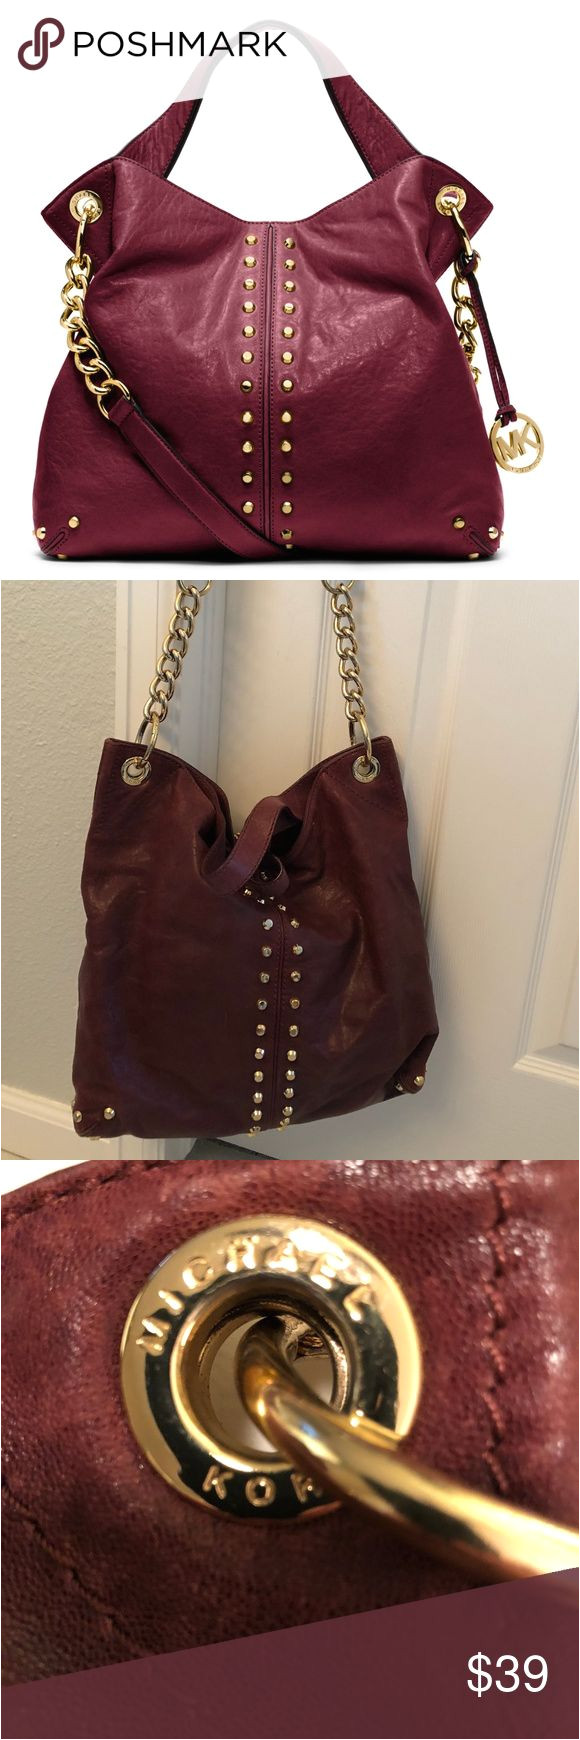 michael kors astor leather studded hobo authentic michael kors astor studded handbag with gold hardware color is a deep purple 2 shoulder straps and